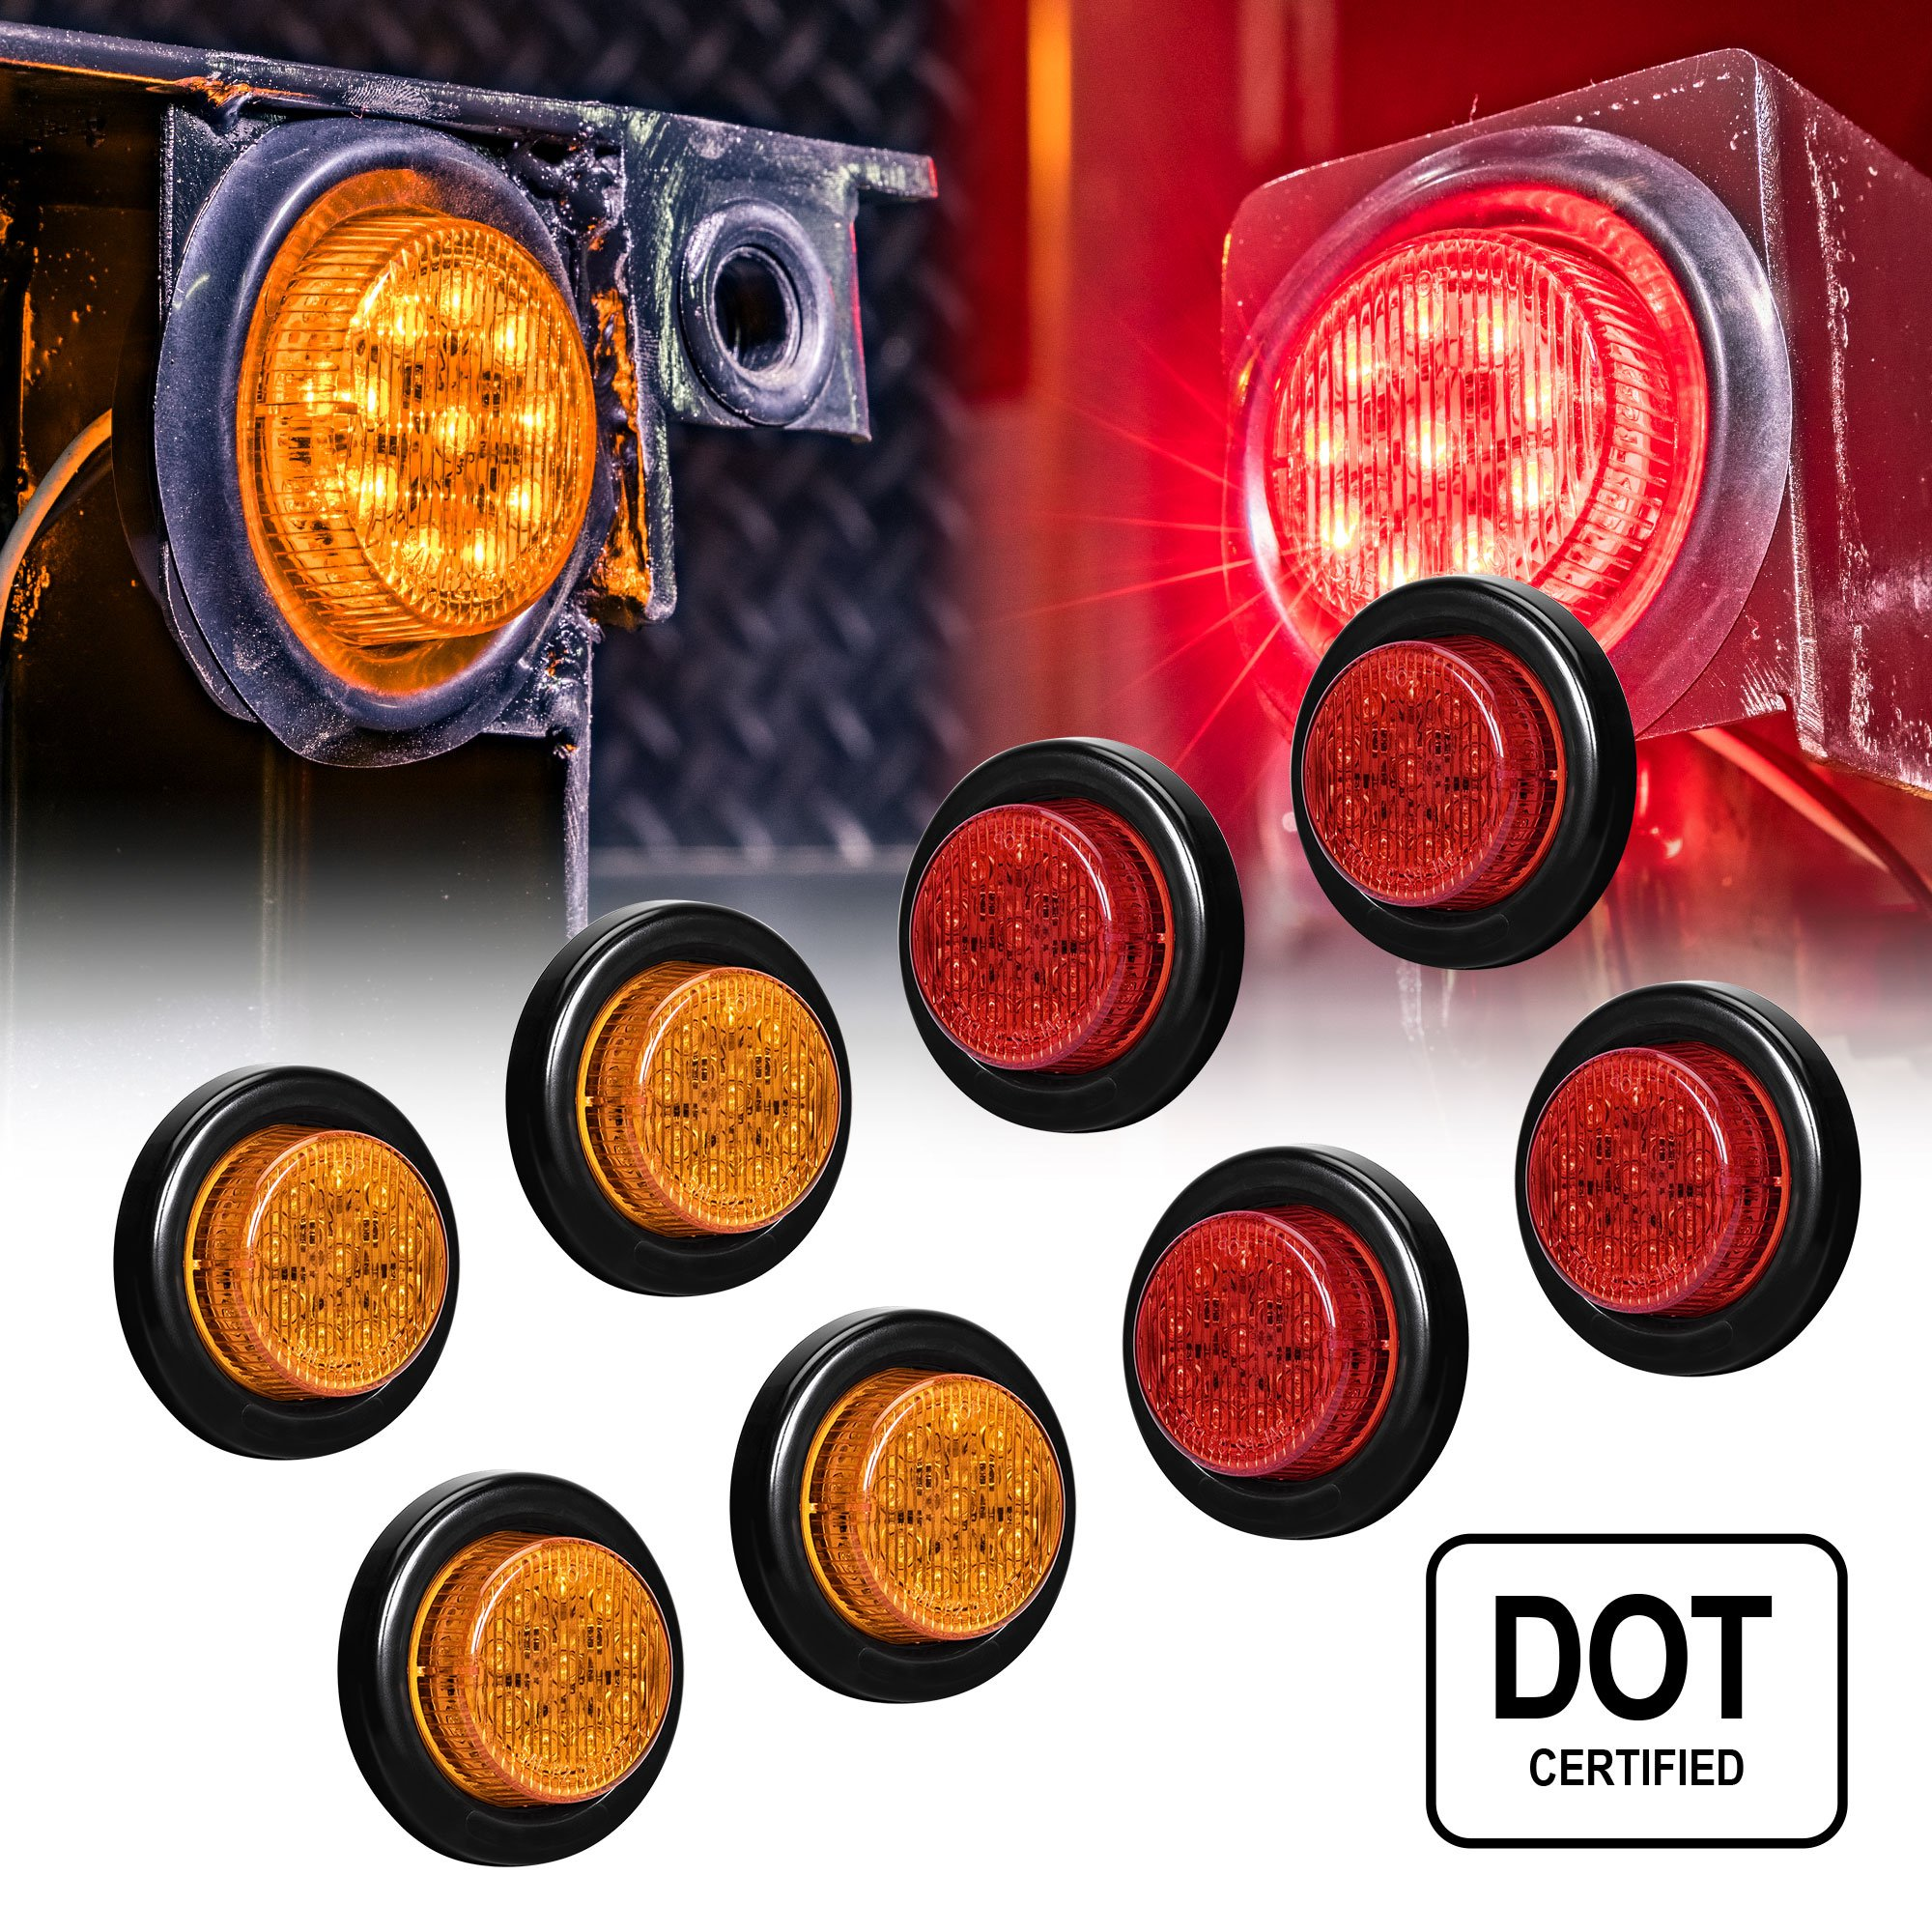 """OLS 8 PC 2"""" Round LED Clearance Light Side Marker - Two in One Reflector and Clearance Light [Polycarbonate Reflector] [10 LEDs] [Rubber Grommet] [IP 67] for Trailers - 4 Red and 4 Amber"""